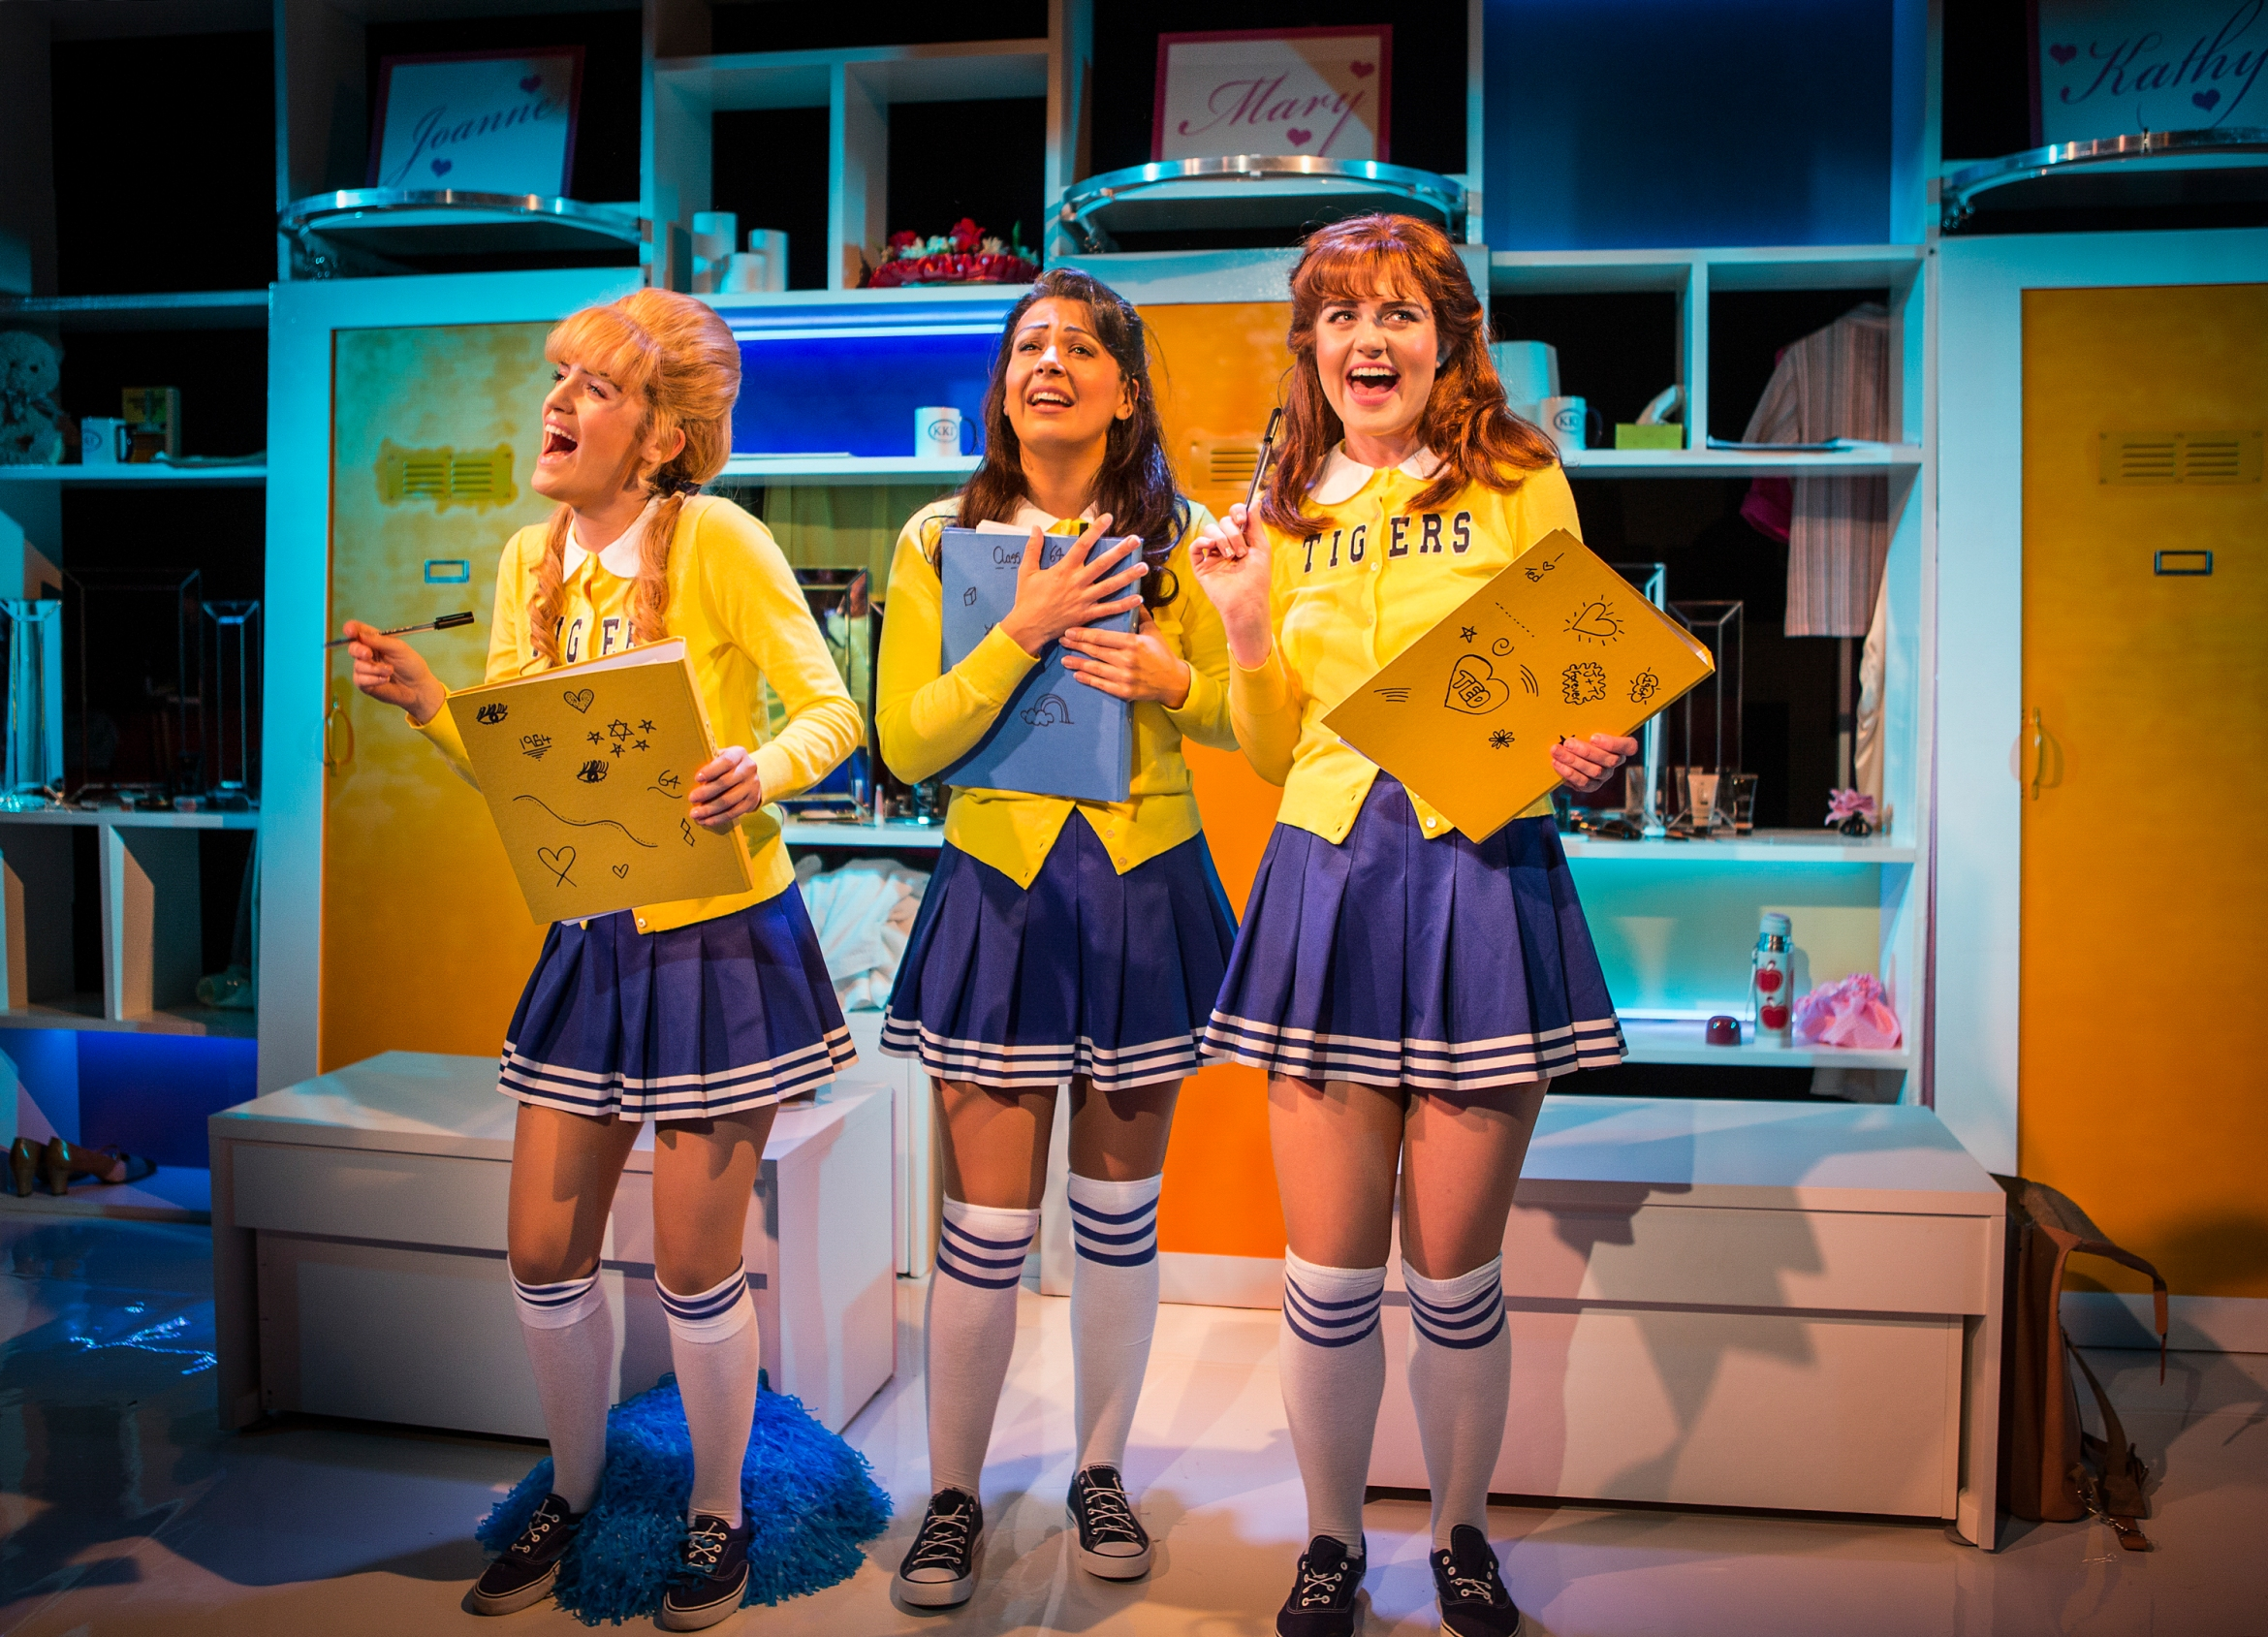 Vanities The Musical - Trafalgar Studios - Lauren Samuels, Ashleigh Gray and Lizzy Connolly -  Photo by Pamela Raith.jpg